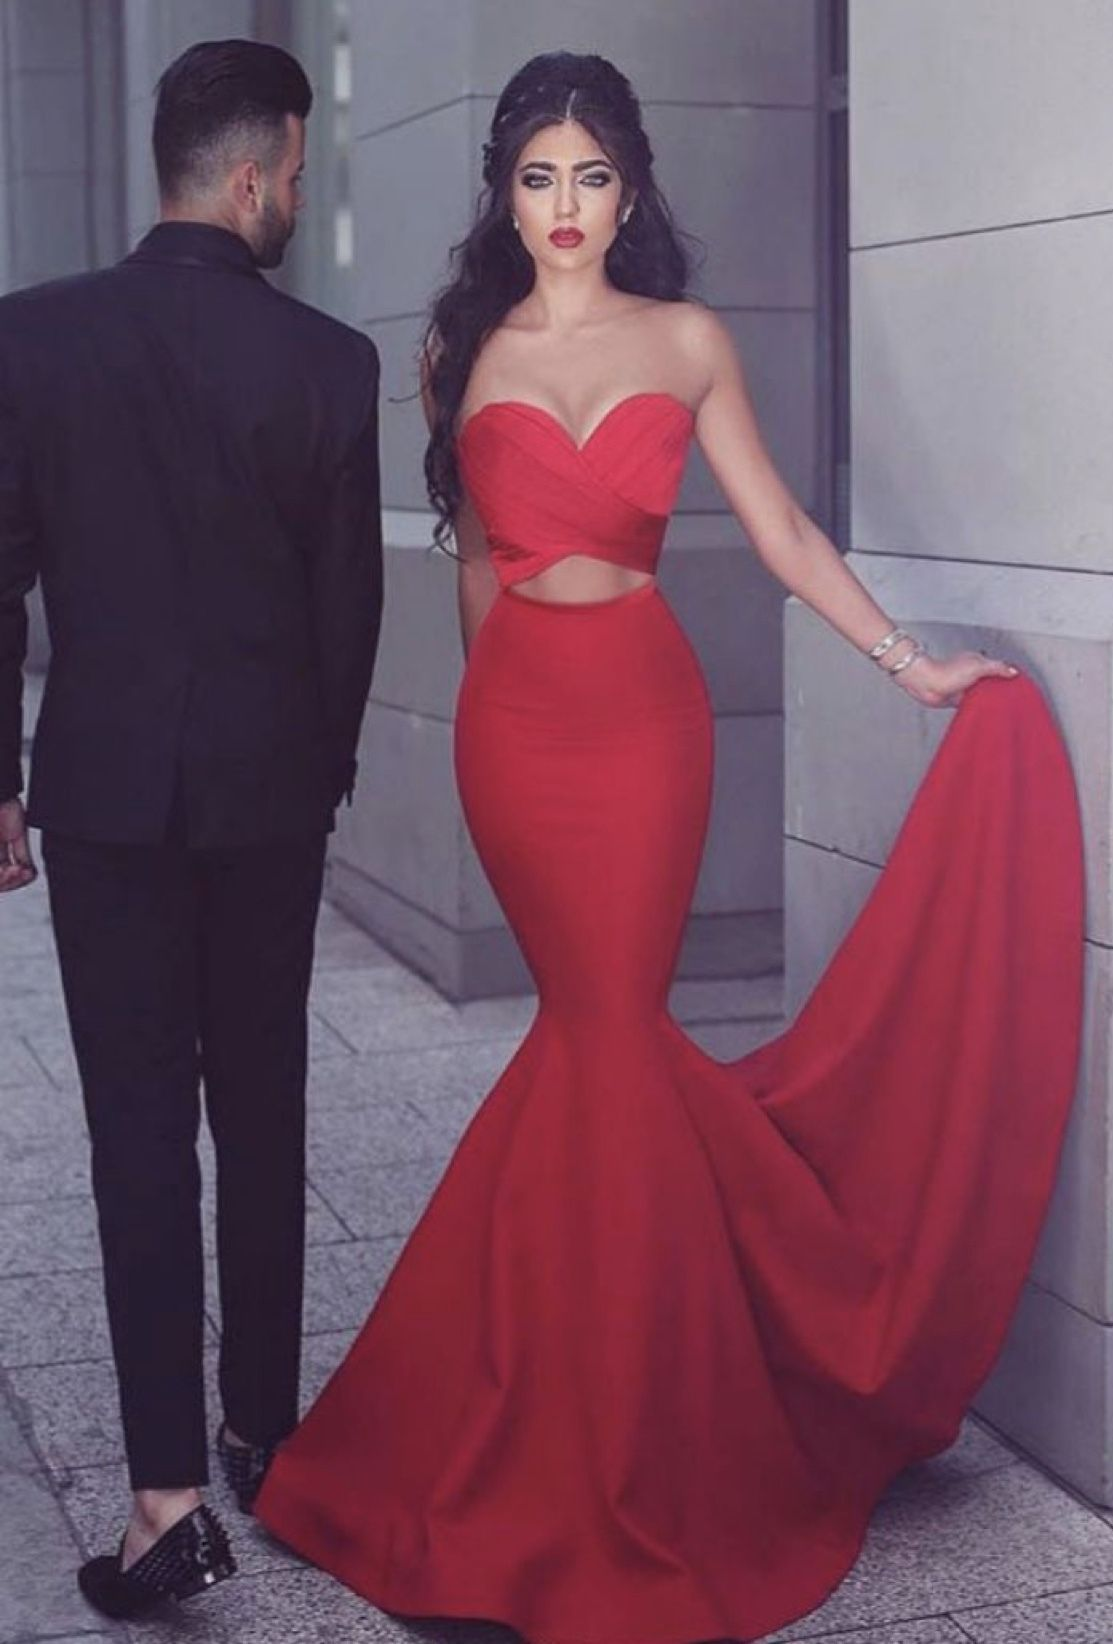 Gorgeous Strapless Mermaid Red Long Prom Dress Evening Dress 2019 G1820 Sweetheart Evening Dress Red Mermaid Prom Dress Red Prom Dress Long [ 1644 x 1113 Pixel ]